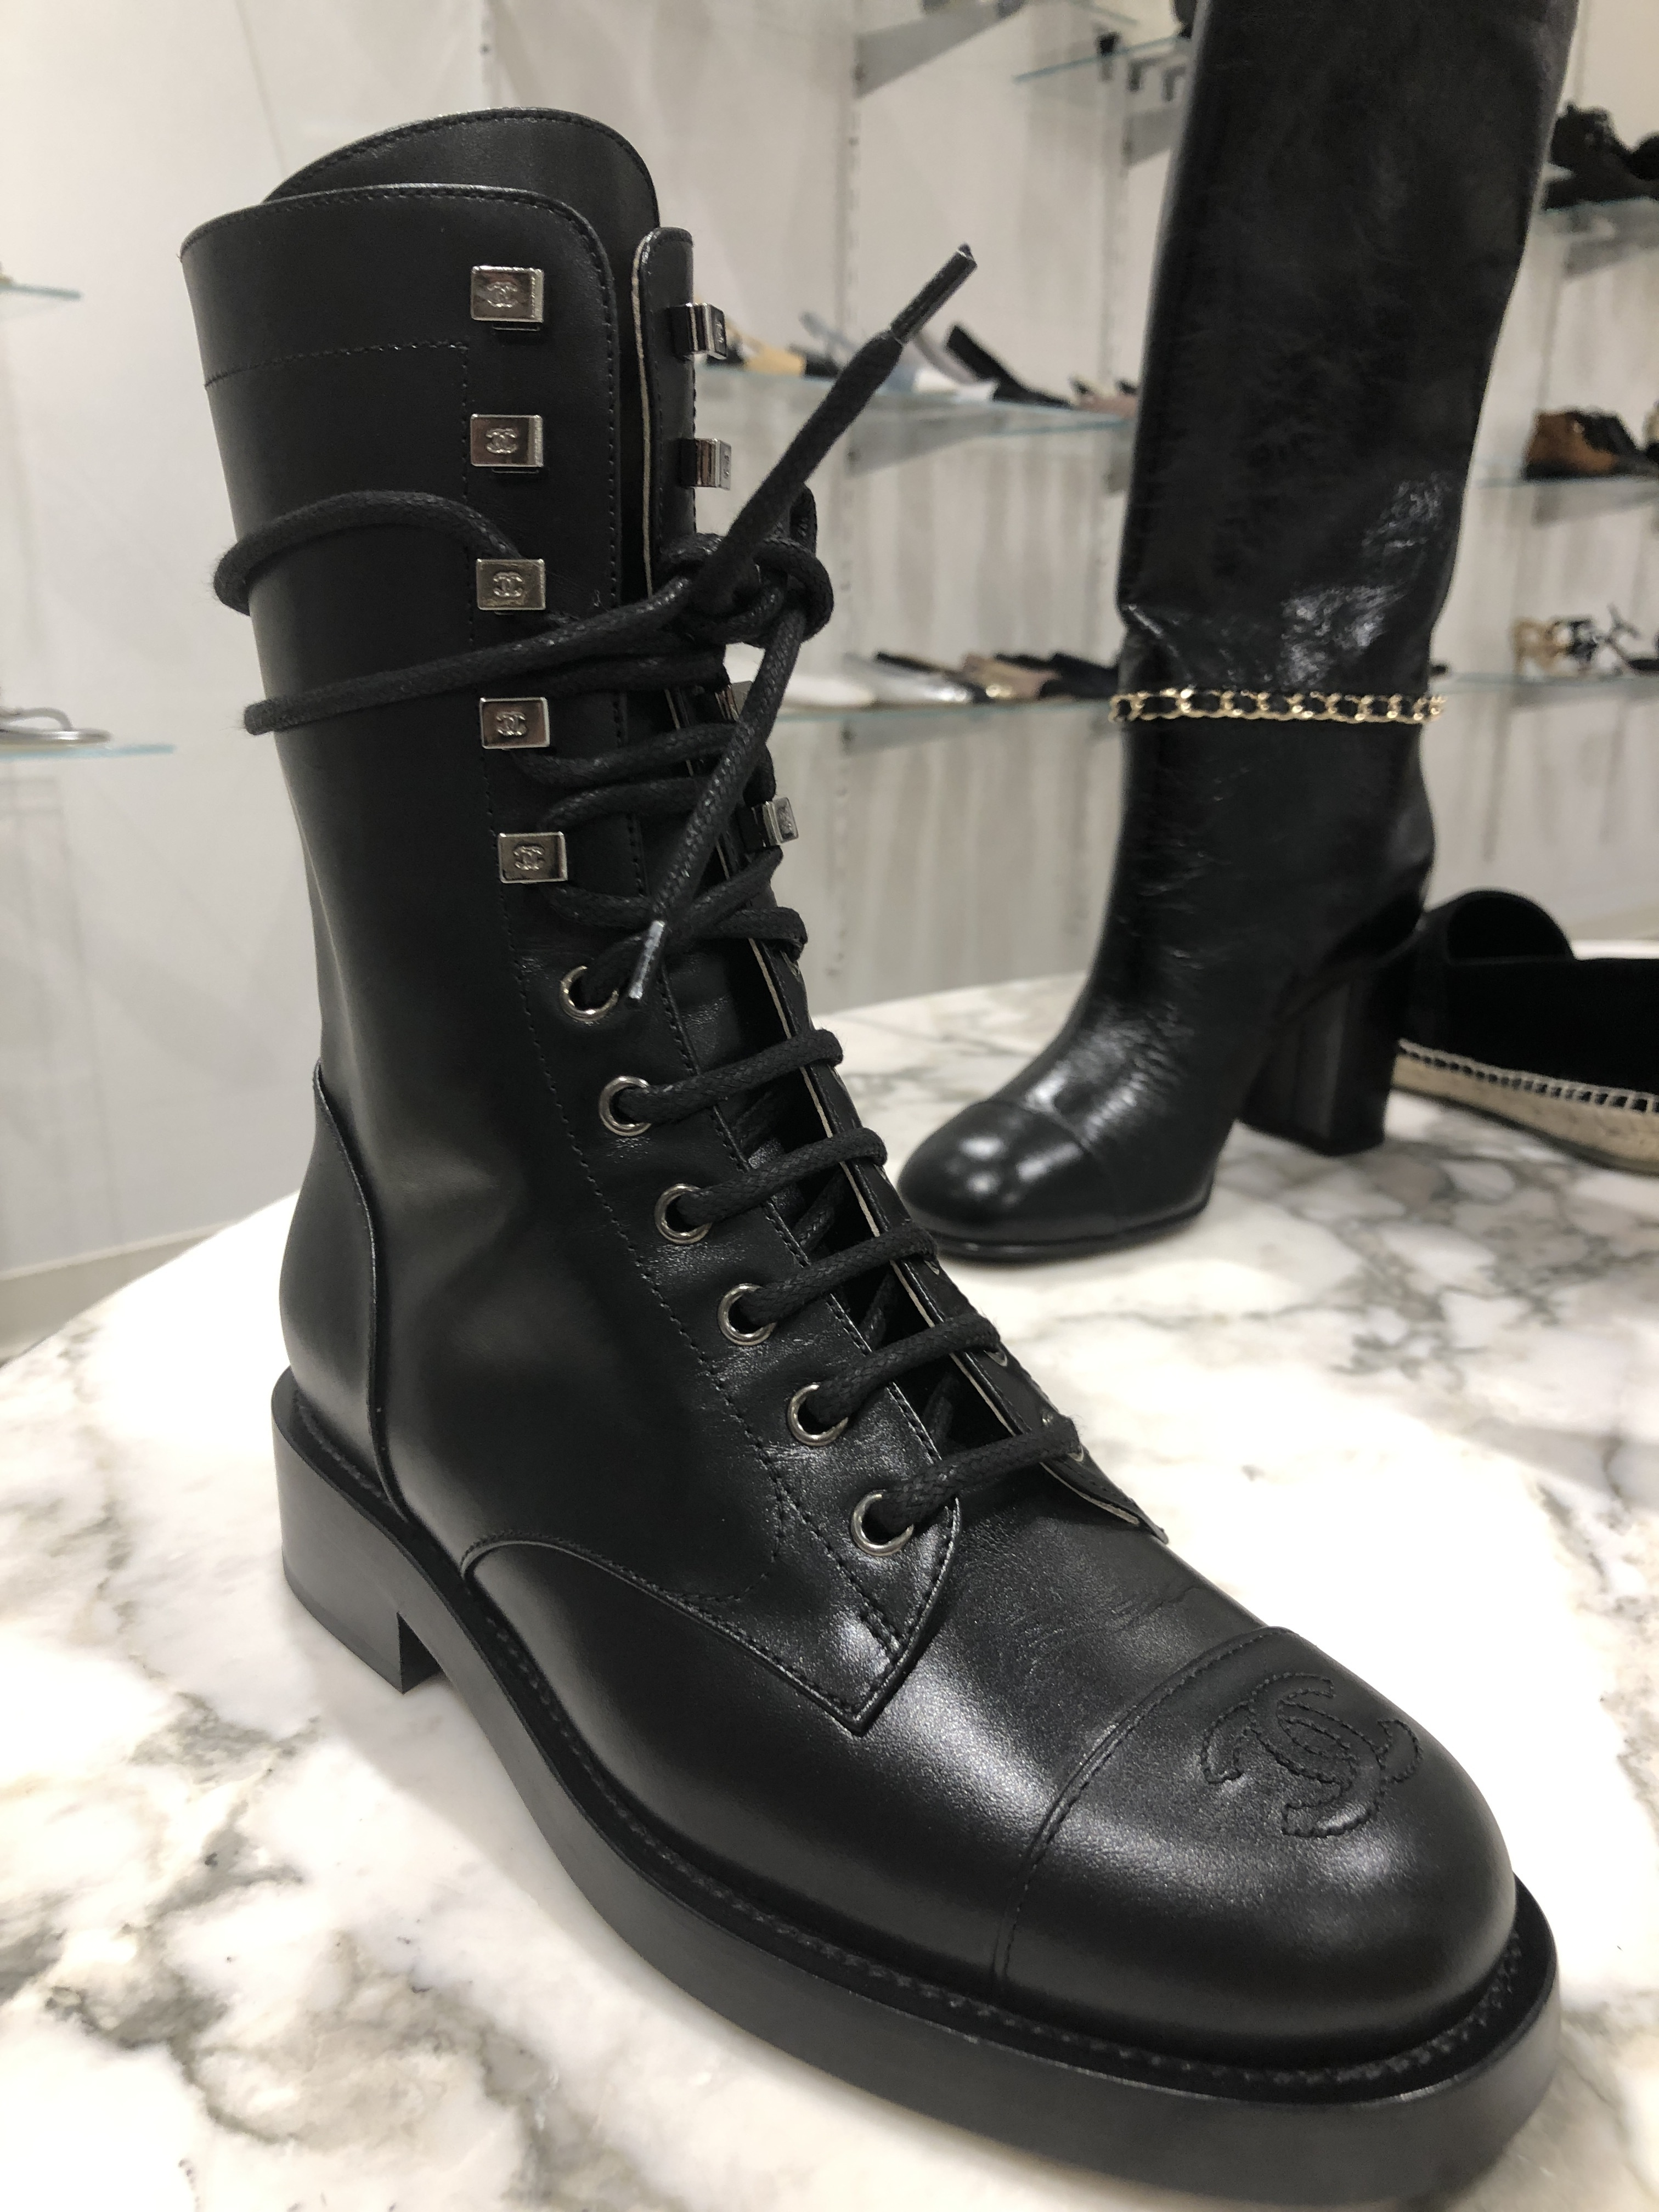 CHANEL 2019-20FW Lace-up Boots Boots